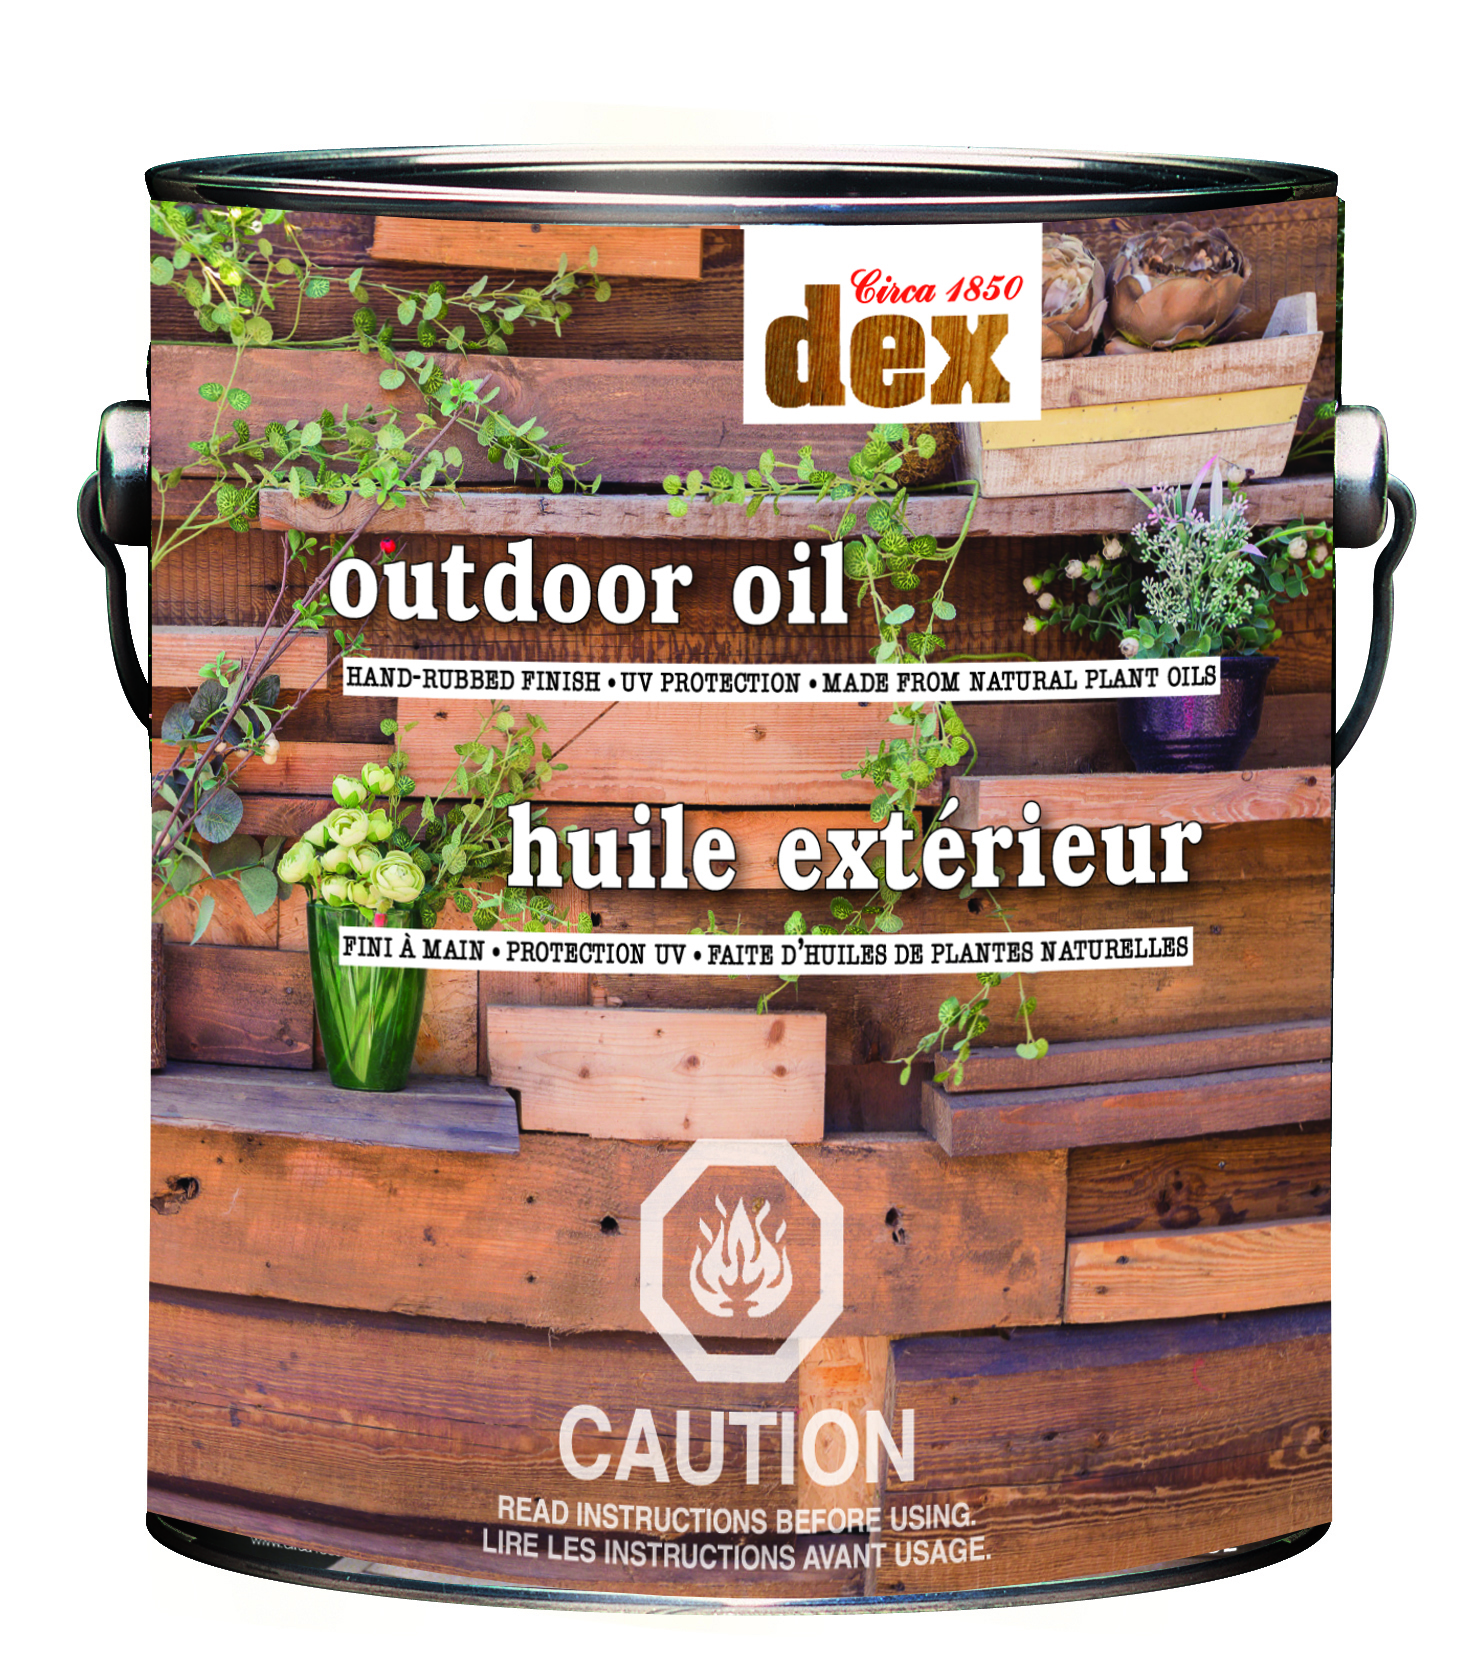 Circa 1850 DEX<br>Outdoor Oil<br>(Marine Grade Tung&#x0027;n Teak Oil)